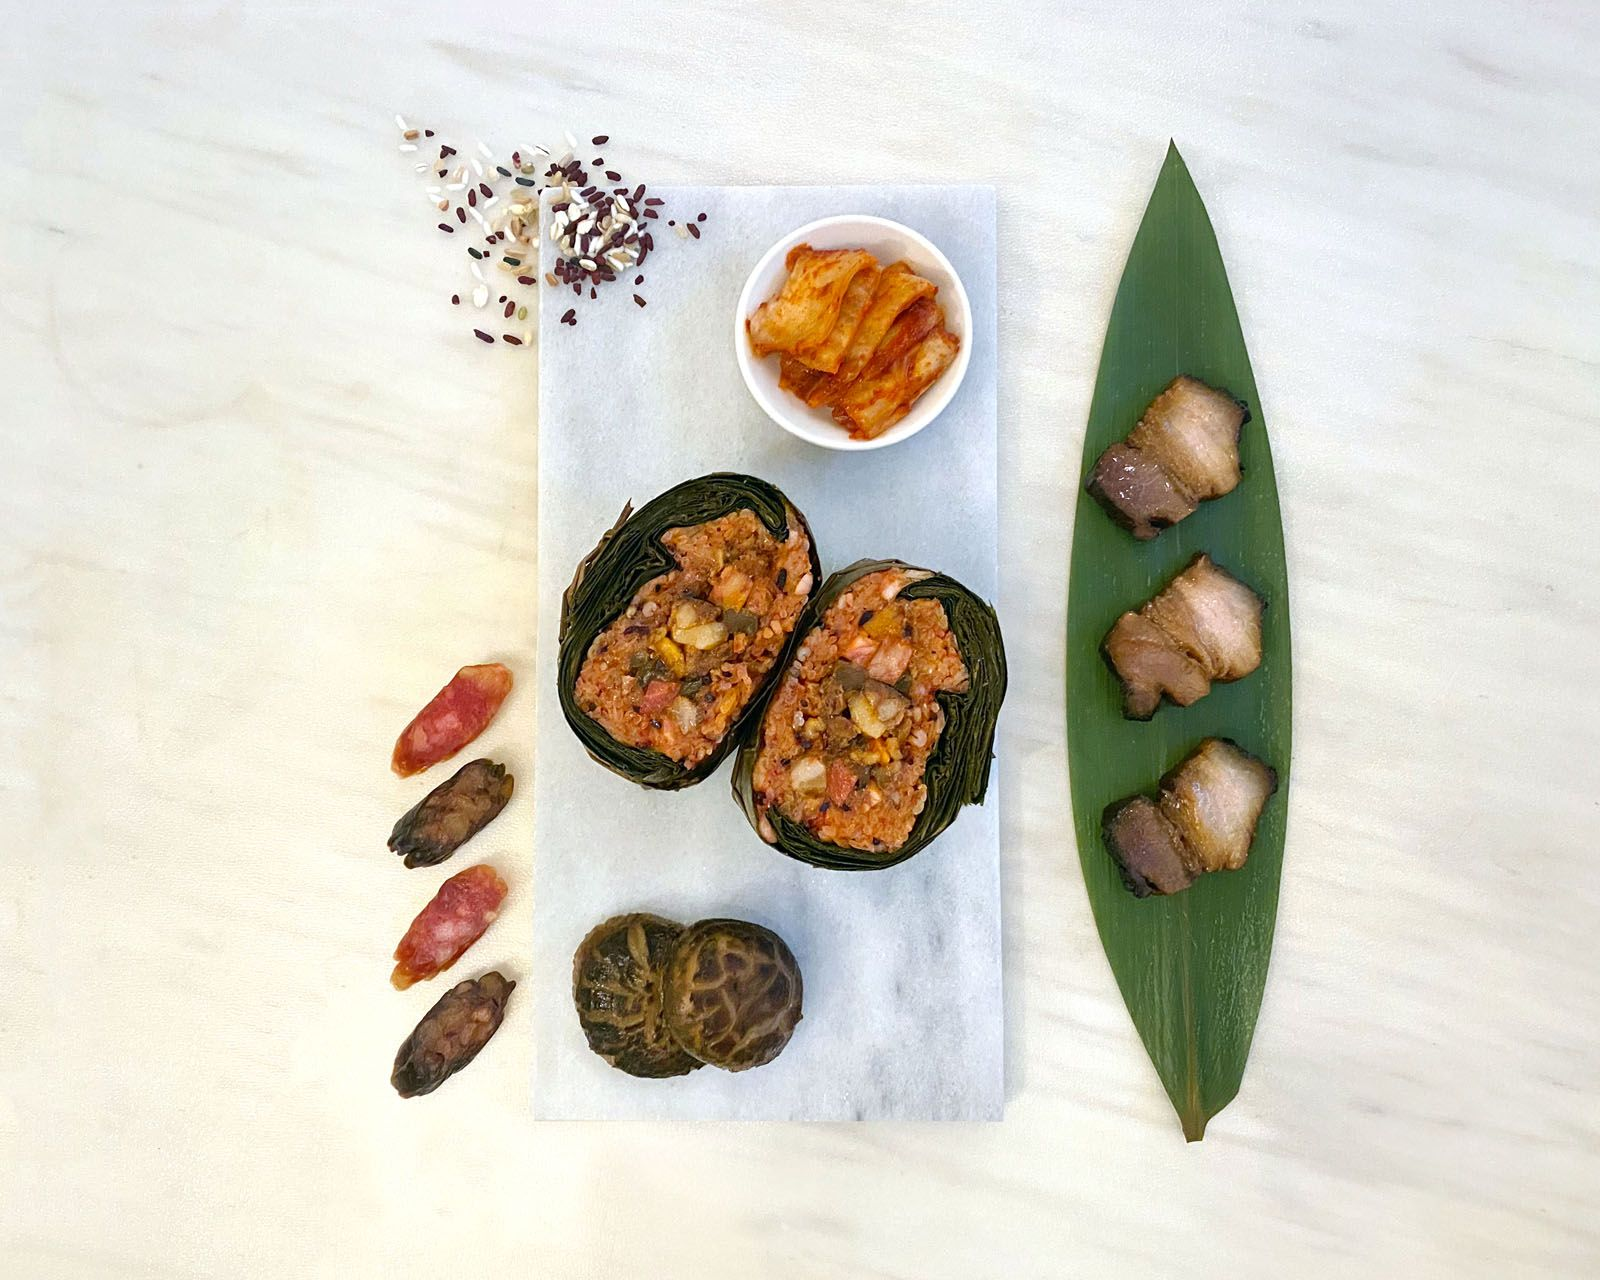 The Best Rice Dumplings in Singapore To Celebrate Dragon Boat Festival 2020